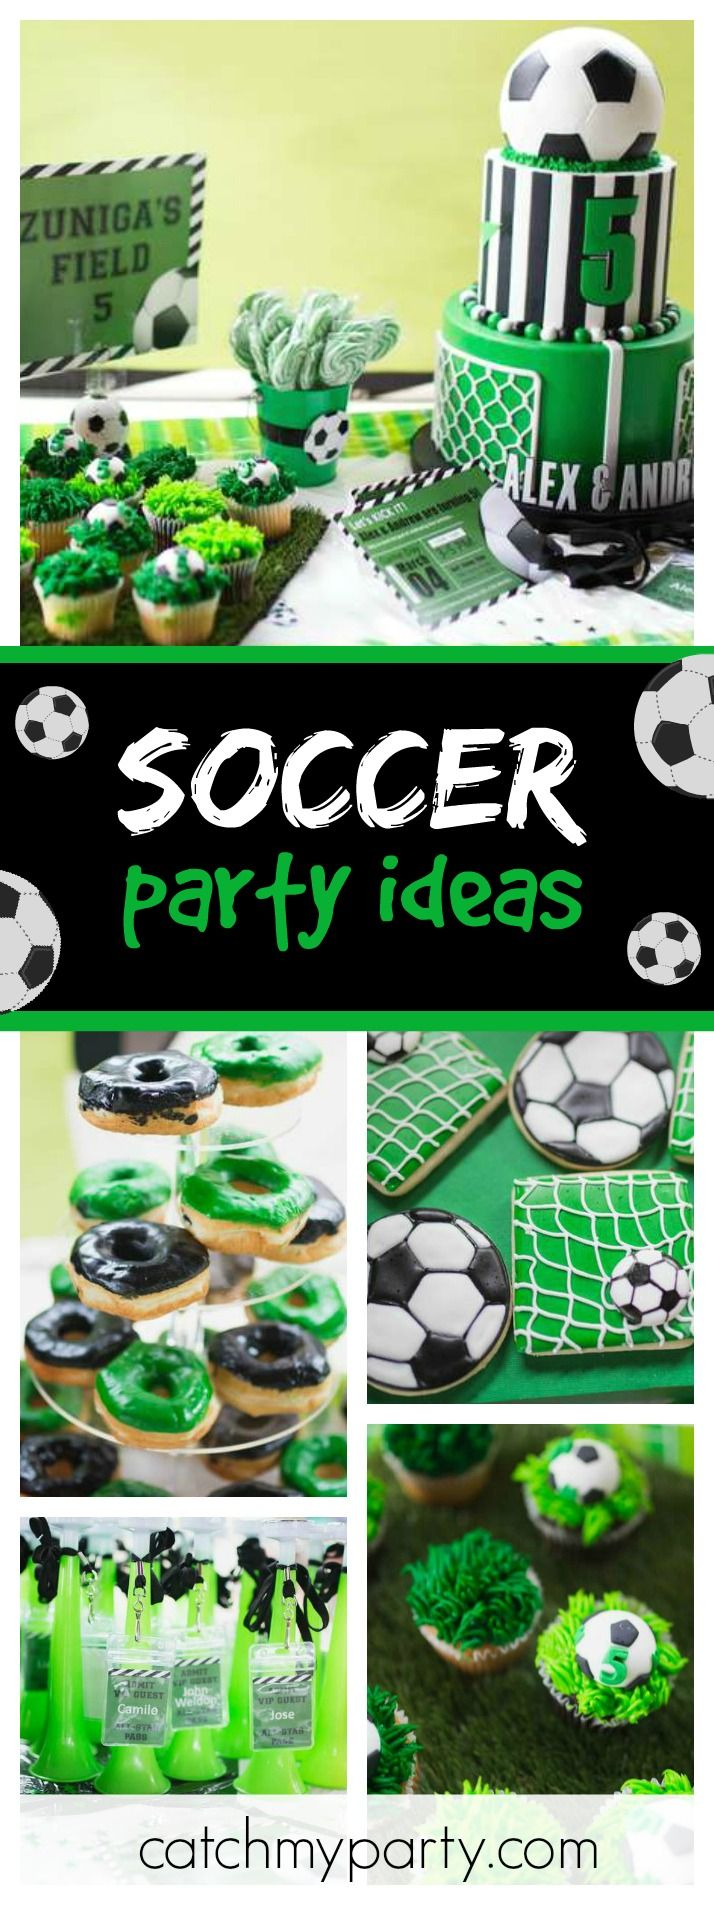 Check out this awesome Soccer birthday party for twins. The cupcakes are so much fun!! See more party ideas and share yours at CatchMyParty.com